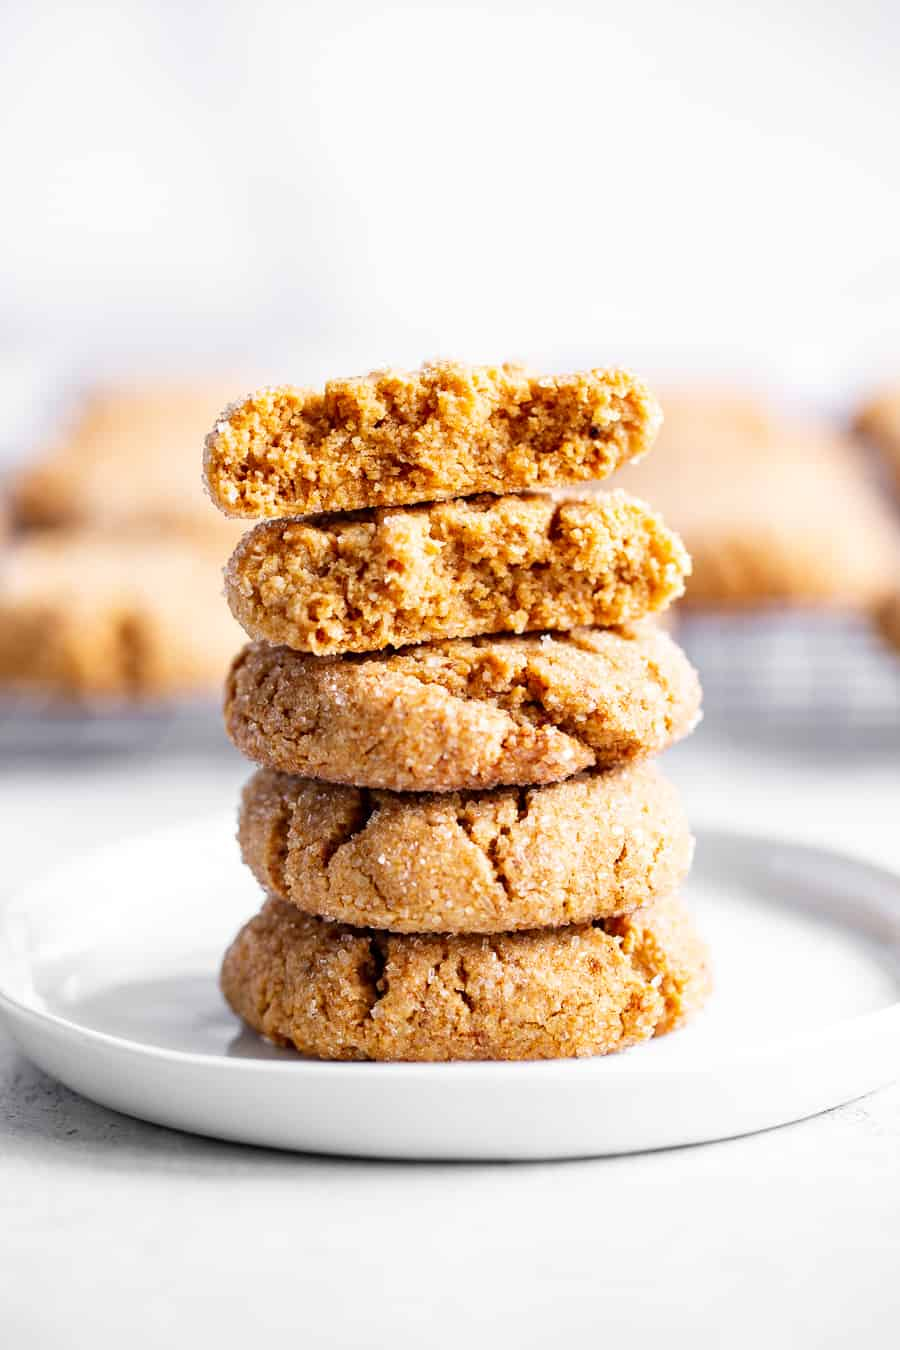 These one bowl peanut butter cookies are make with your favorite creamy nut butter and just a few simple, healthy ingredients! They're soft and a little crisp, egg free, vegan, and perfect for simple desserts and snacks, and to make with kids! Use almond or cashew butter to keep them paleo or peanut butter if you prefer! #paleo #vegan #glutenfree